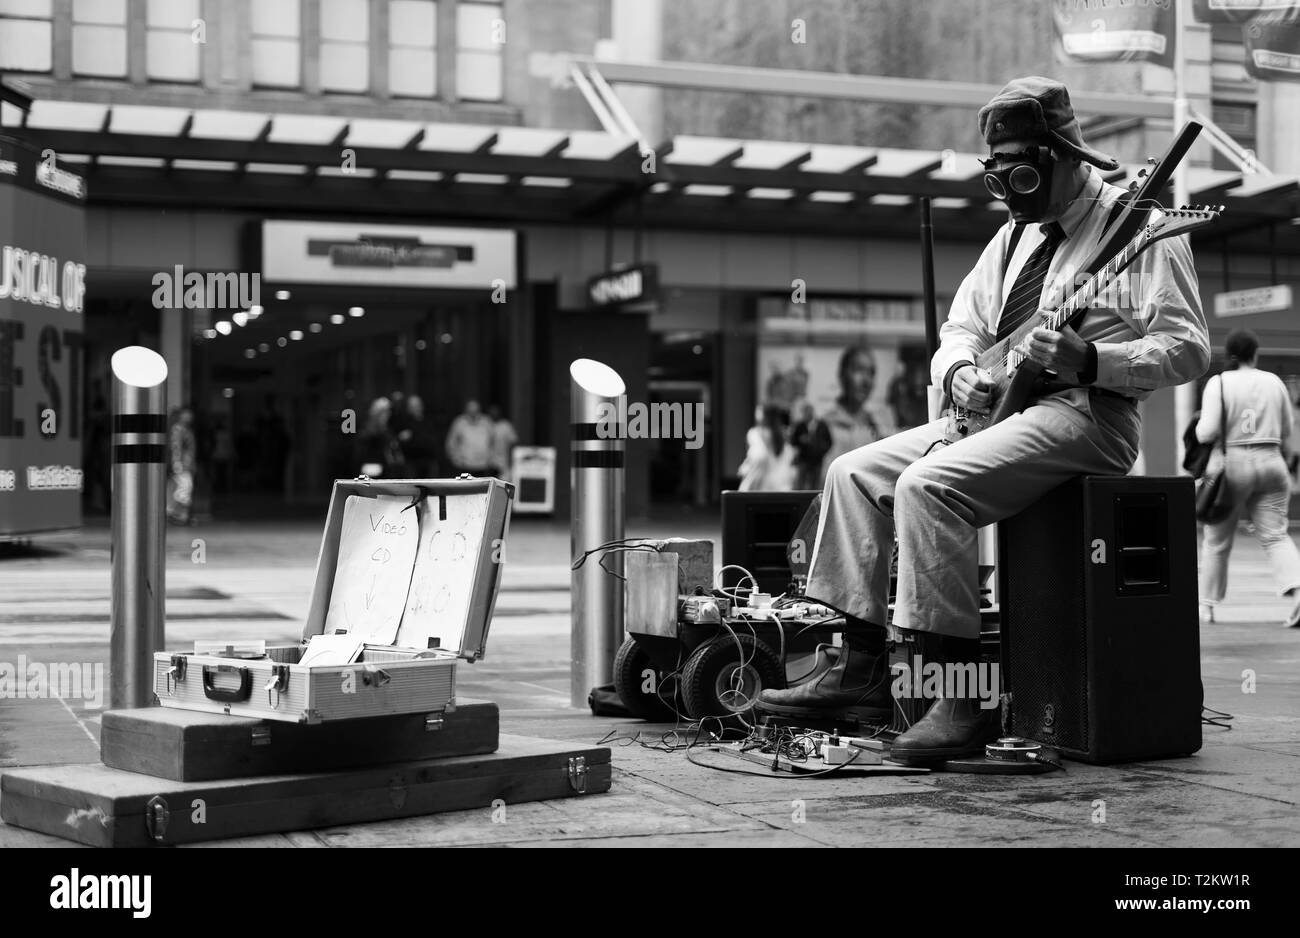 Street busker playing guitar with a gas mask on - Stock Image